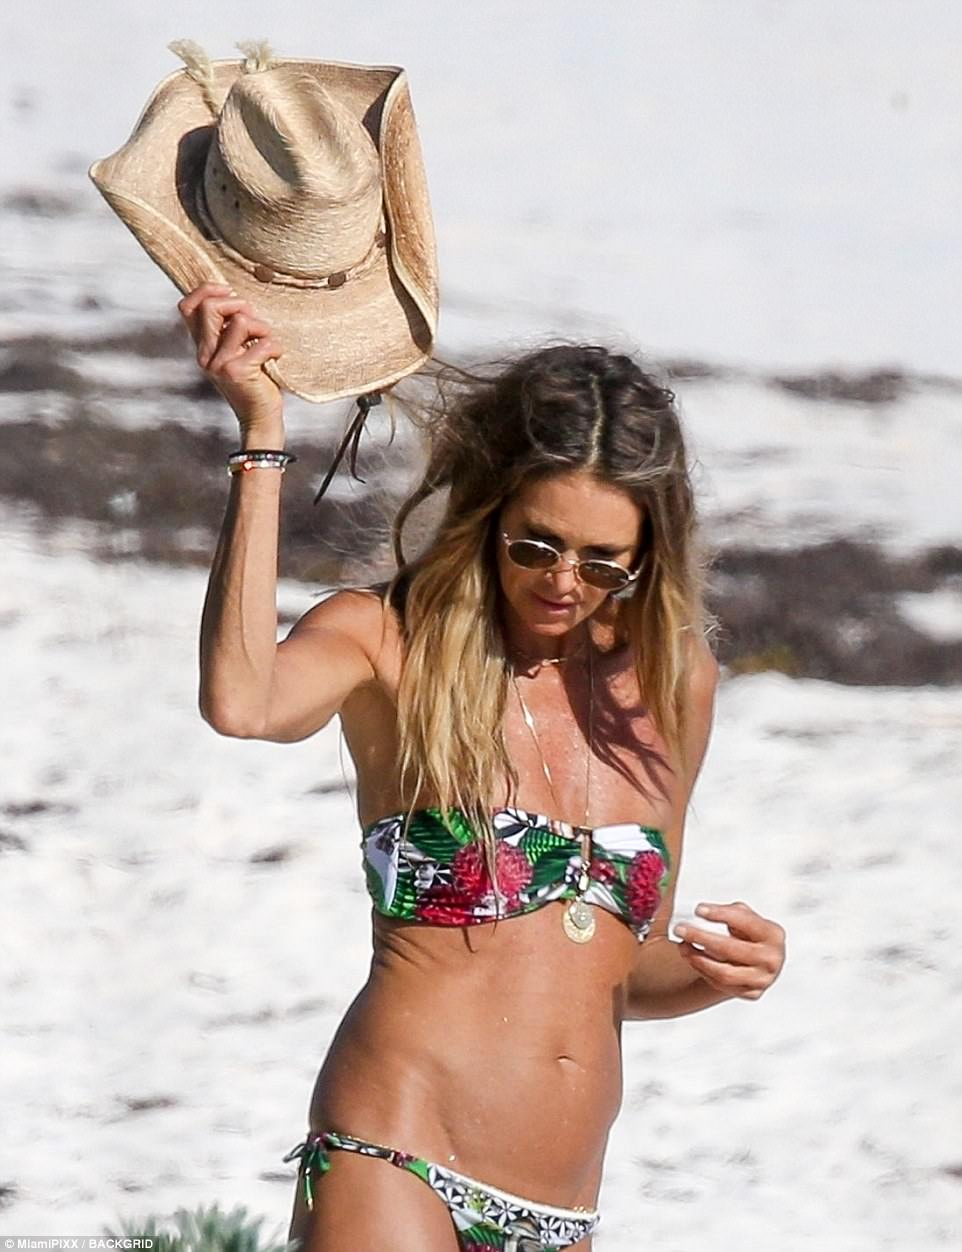 Hats off to her! Elle revealed she looks after herself by getting at least seven hours' sleep a night, drinking at least three liters of water a day and sticking to a healthy, nourishing diet